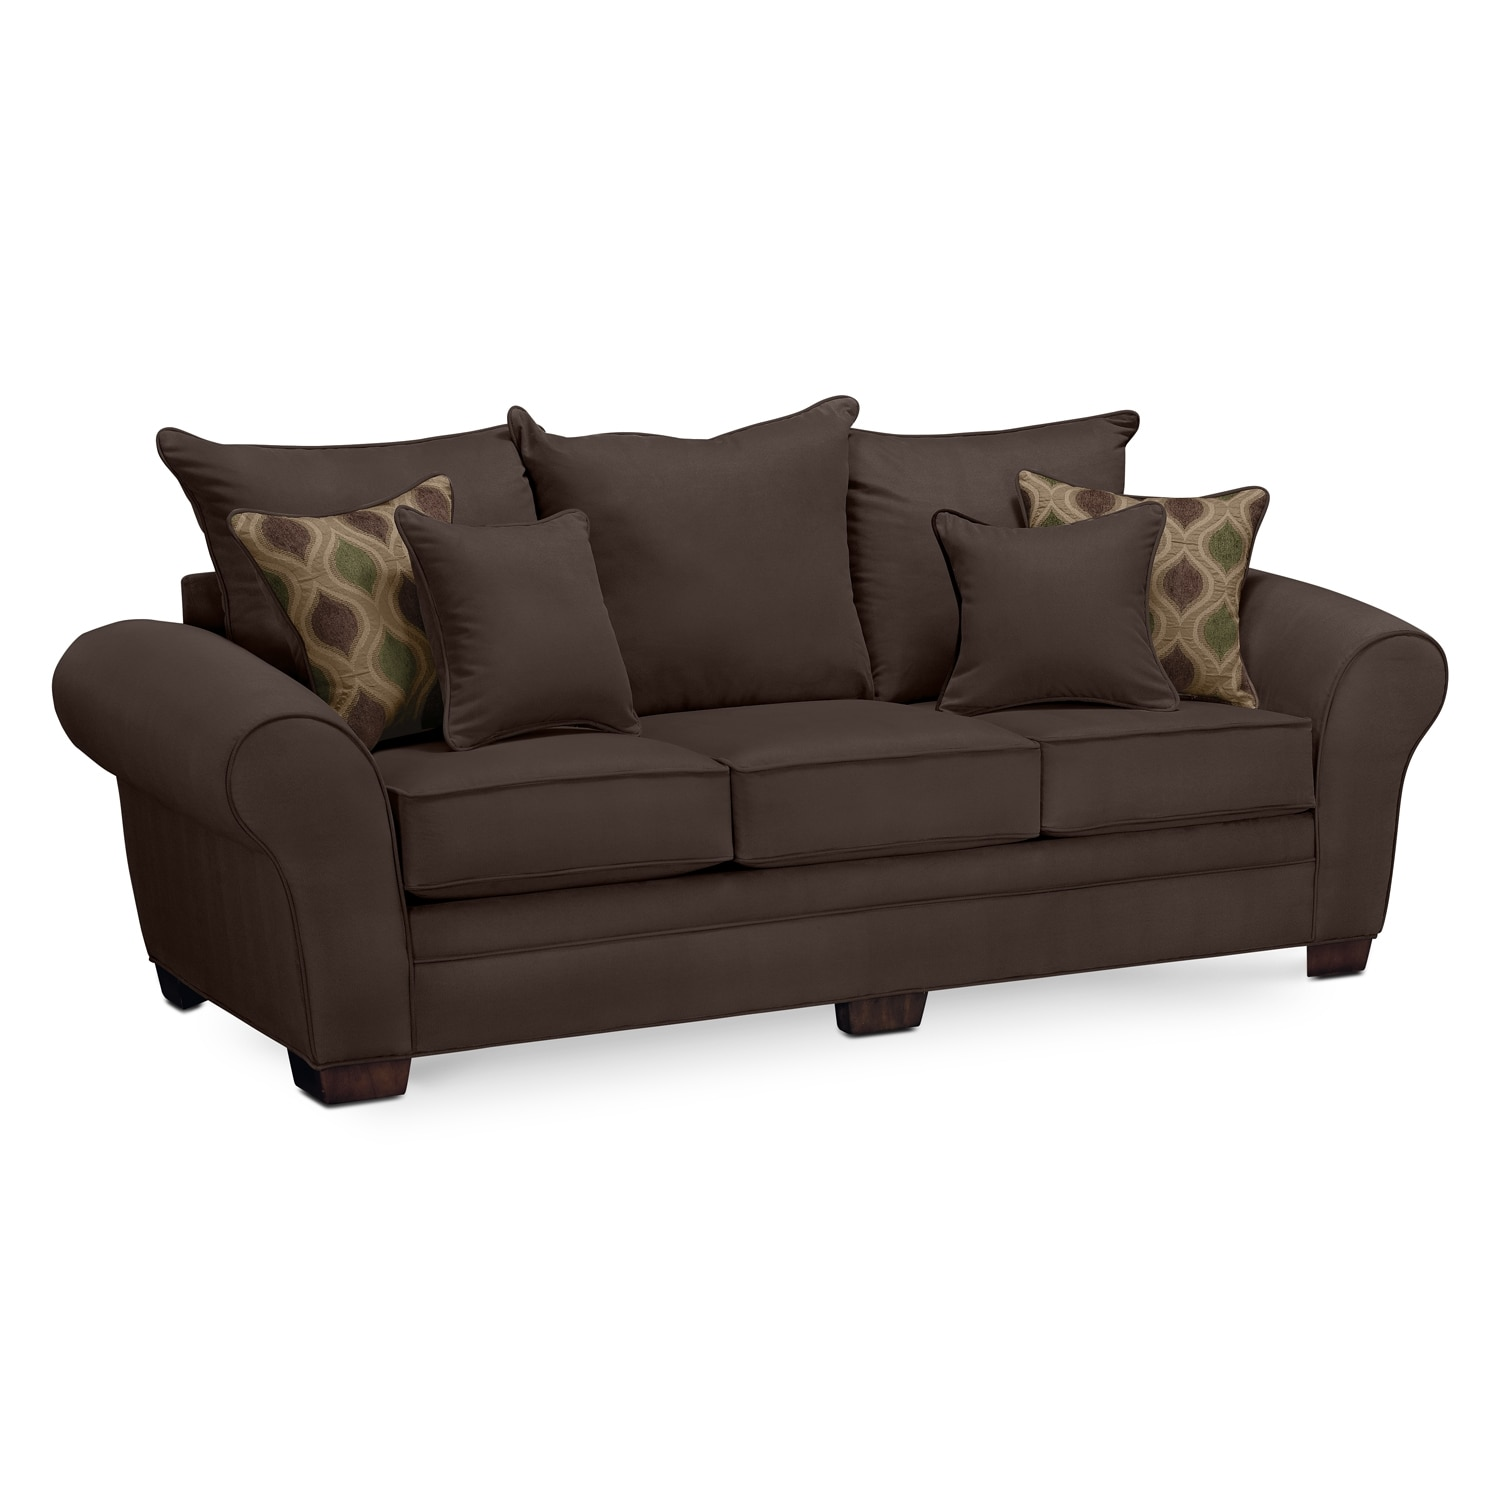 Rendezvous sofa chocolate american signature furniture for Divan furniture